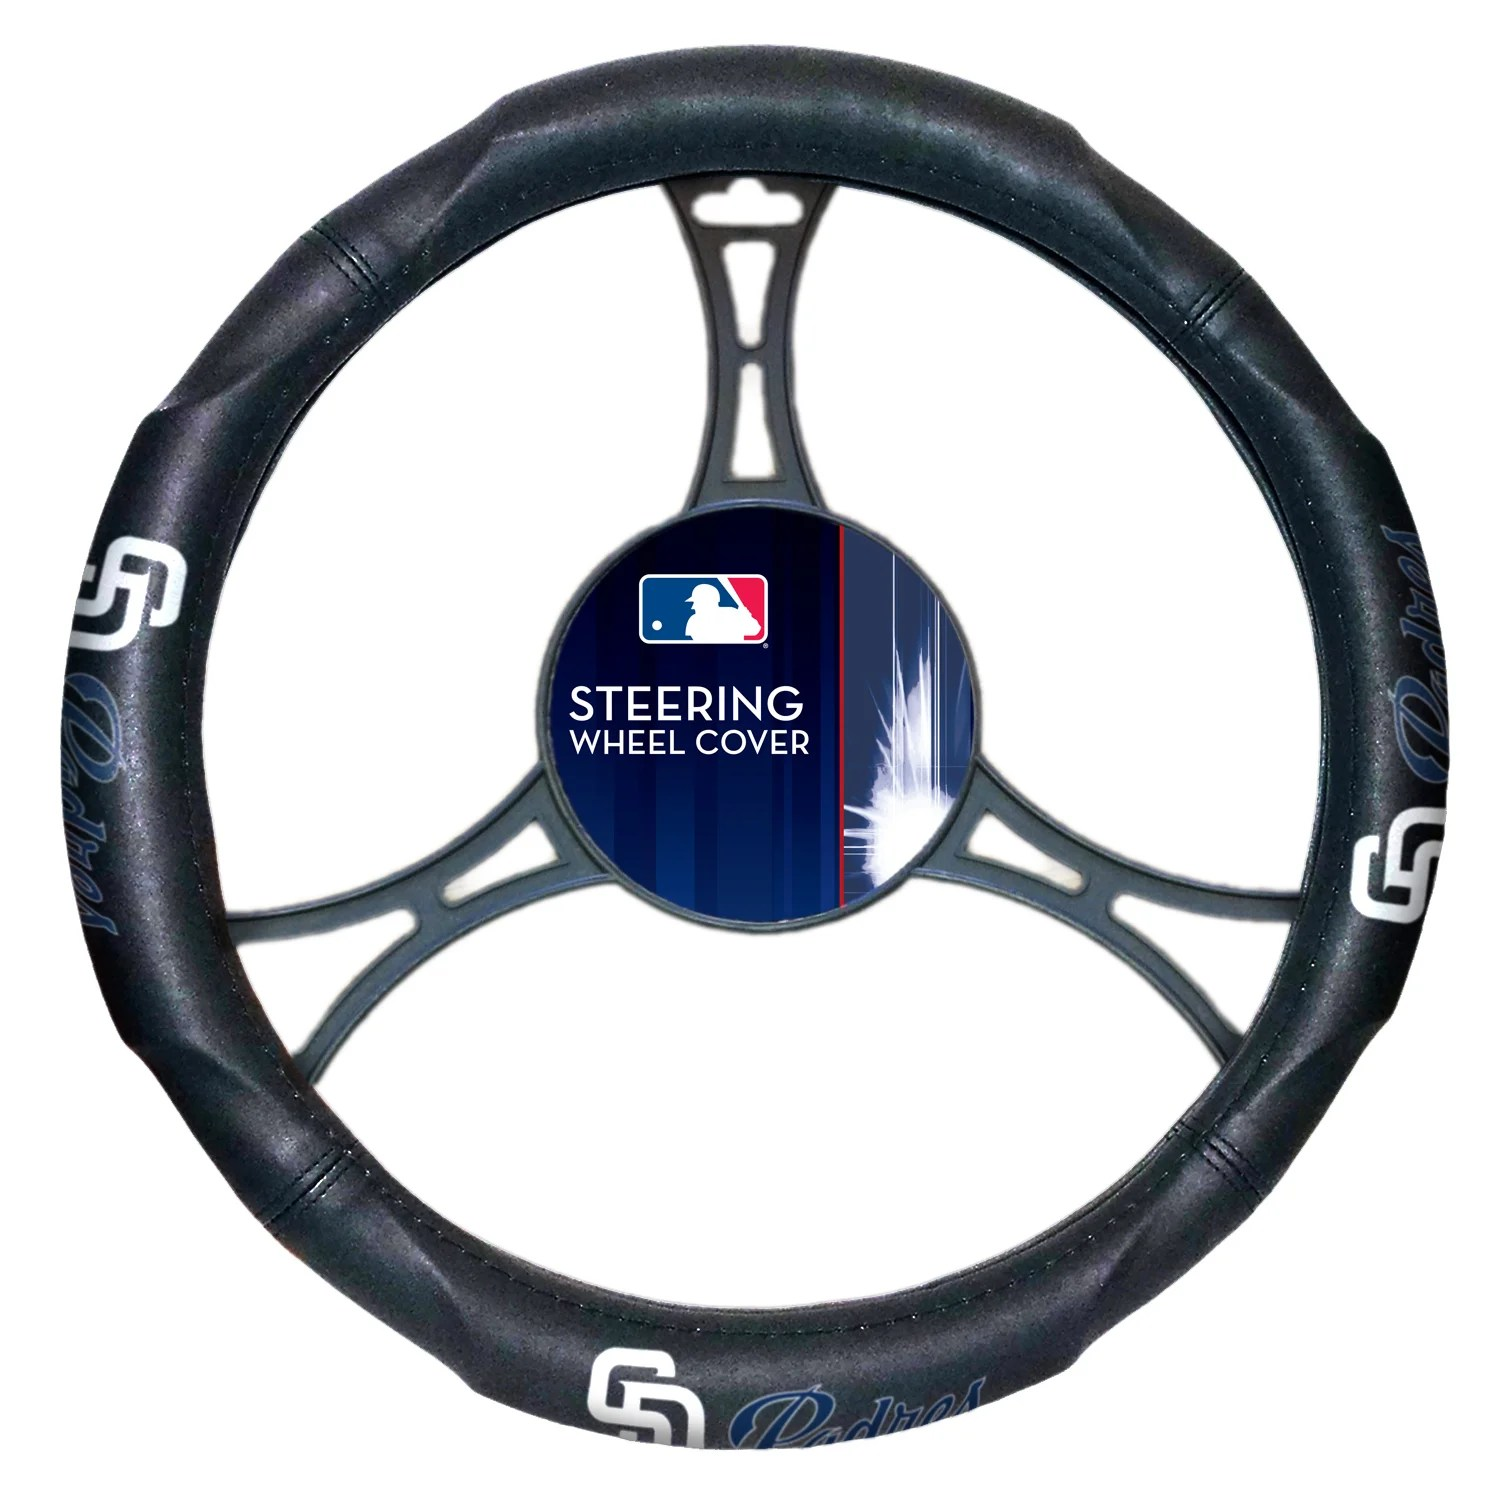 The Northwest Company Padres Multicolored Car Steering Wheel Cover